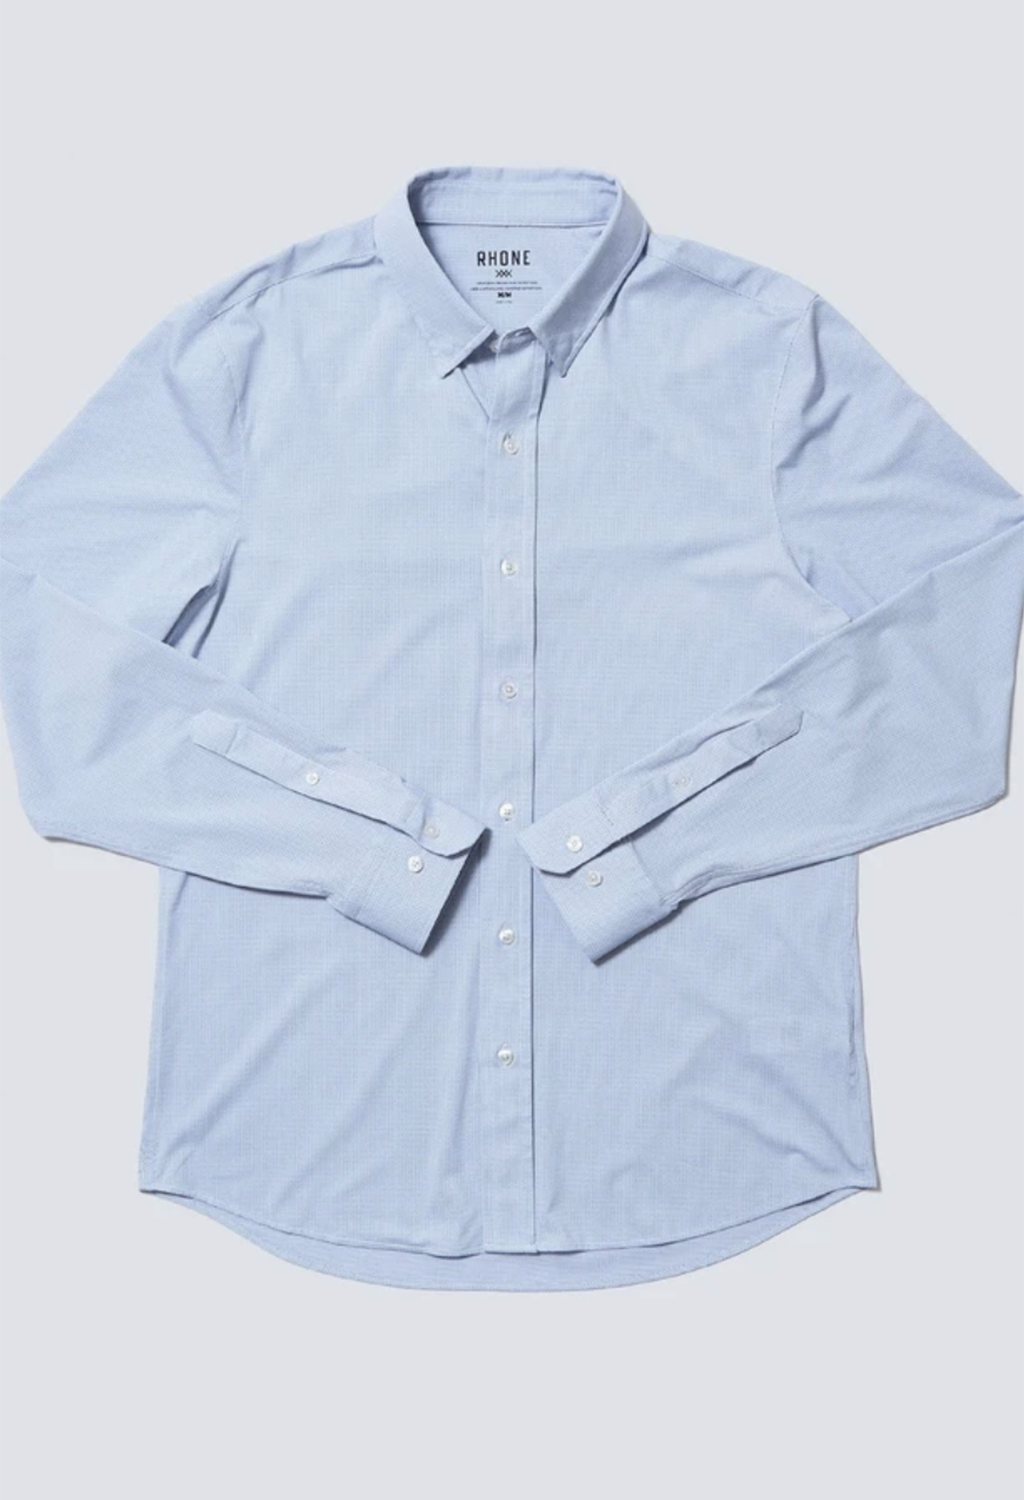 Rhone Commuter Dress Shirt, Navy Pin Dot